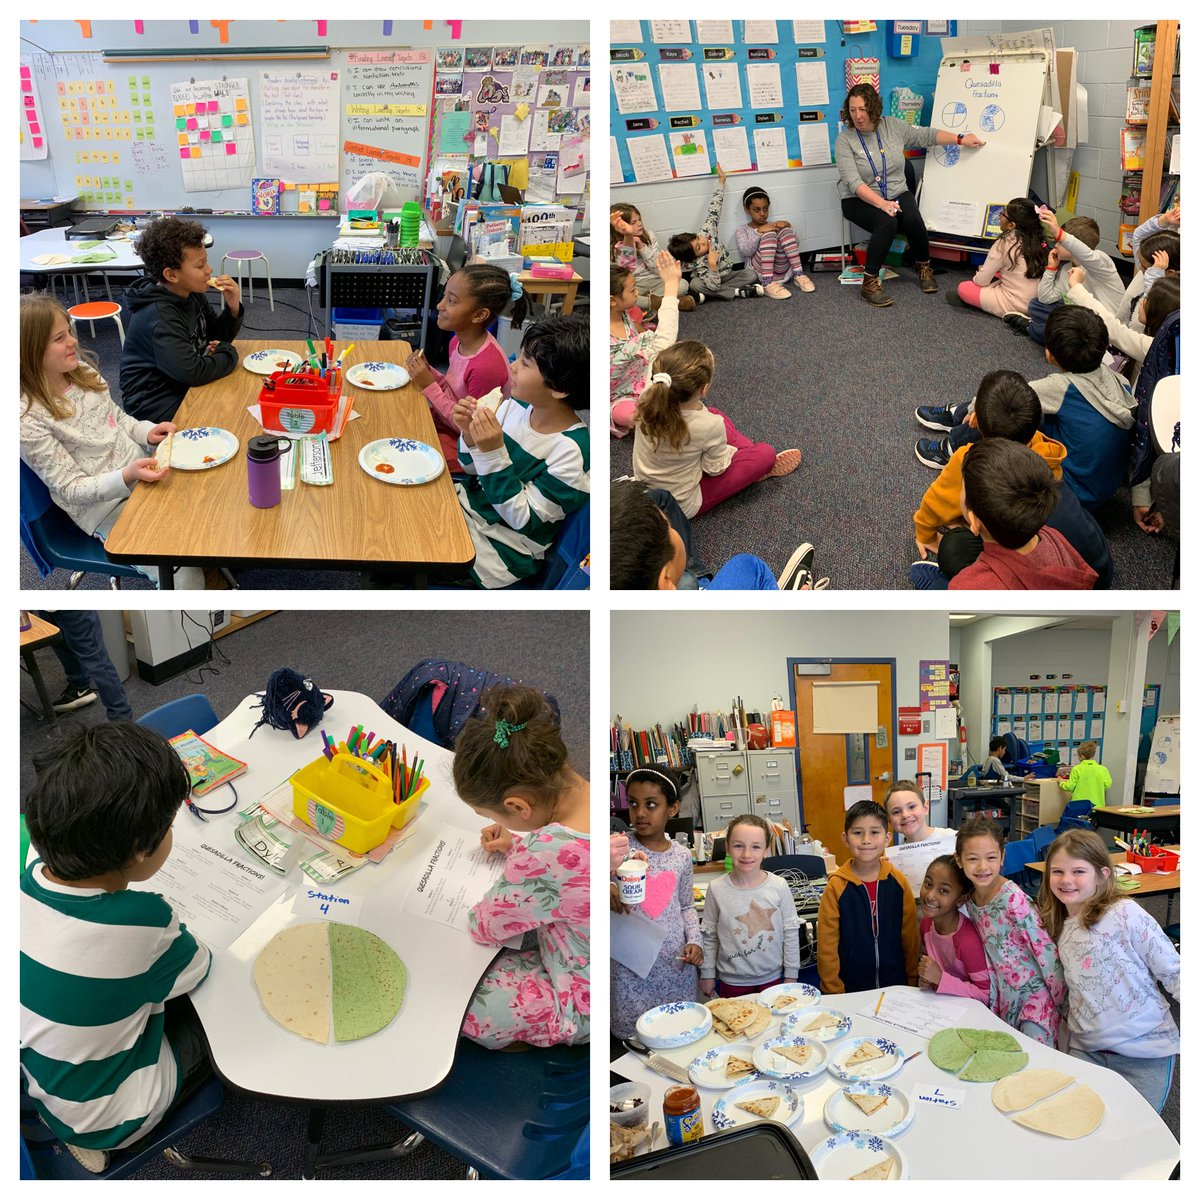 """Today we got to, """"eat our math"""" with <a target='_blank' href='http://twitter.com/CampbellOutside'>@CampbellOutside</a>! We learned as the denominator gets bigger the pieces of the tortillas got smaller! <a target='_blank' href='http://twitter.com/CampbellAPS'>@CampbellAPS</a> <a target='_blank' href='https://t.co/UBtnL08Pk7'>https://t.co/UBtnL08Pk7</a>"""